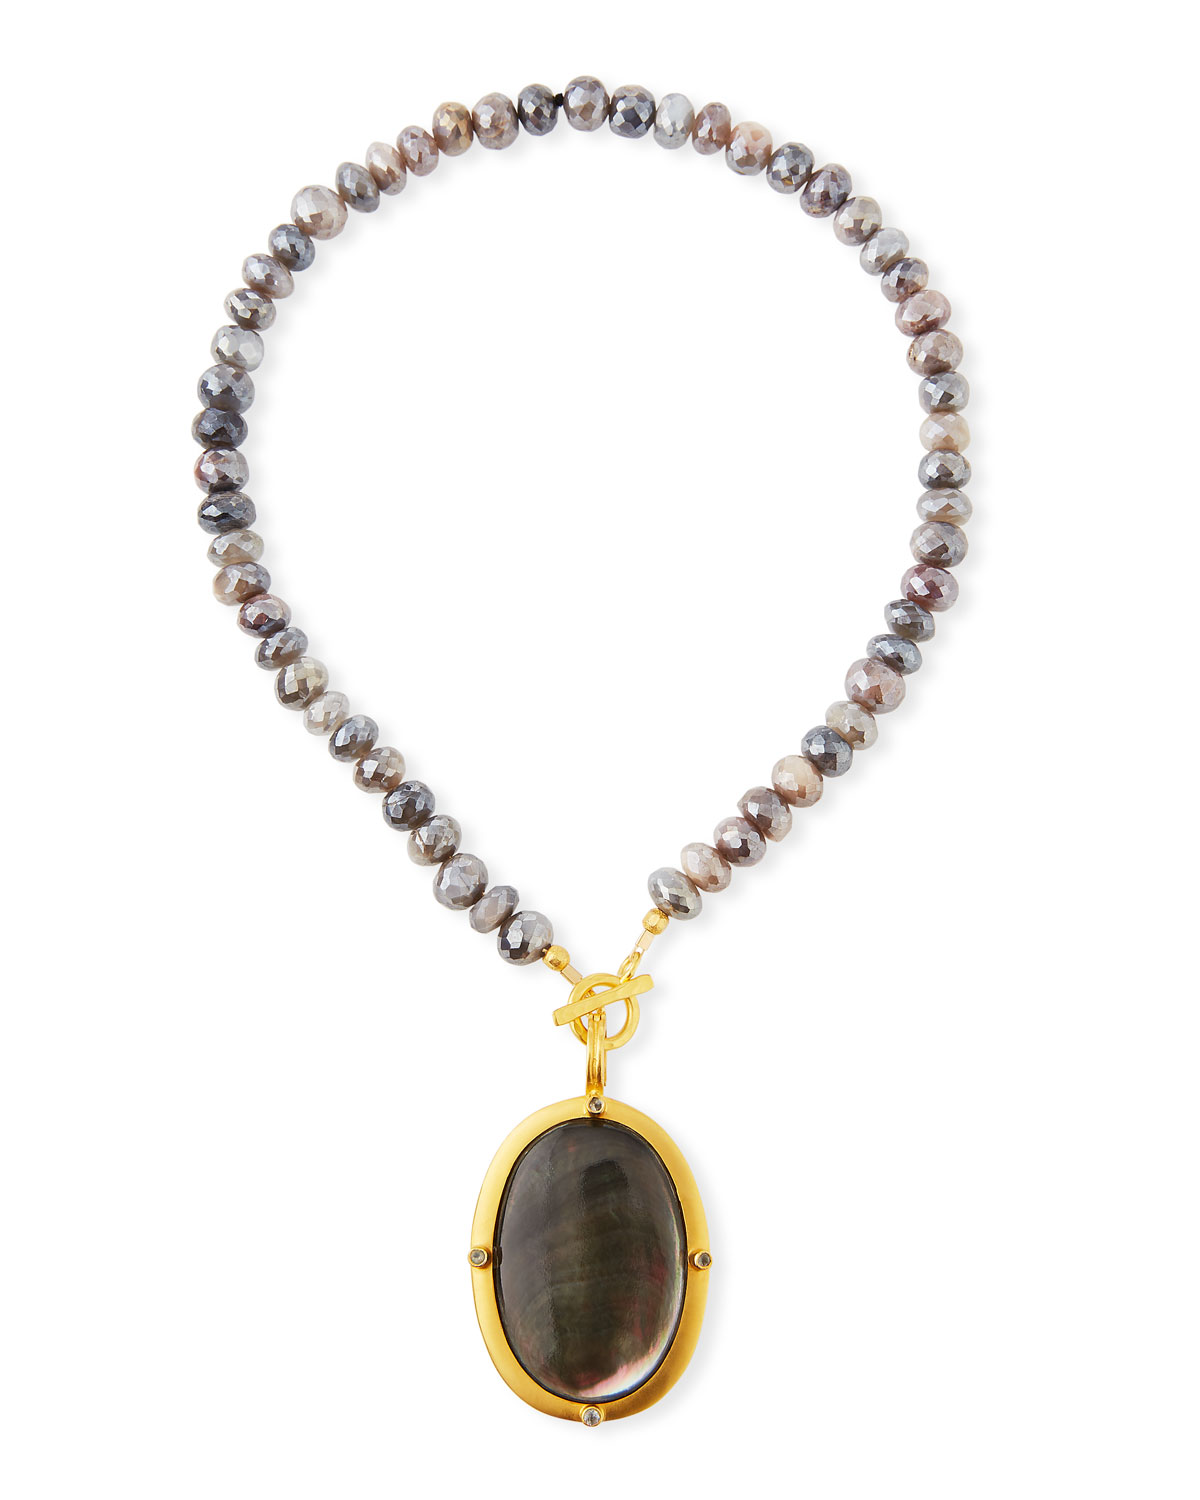 Titanium Moonstone & Black Mother-of-Pearl Necklace